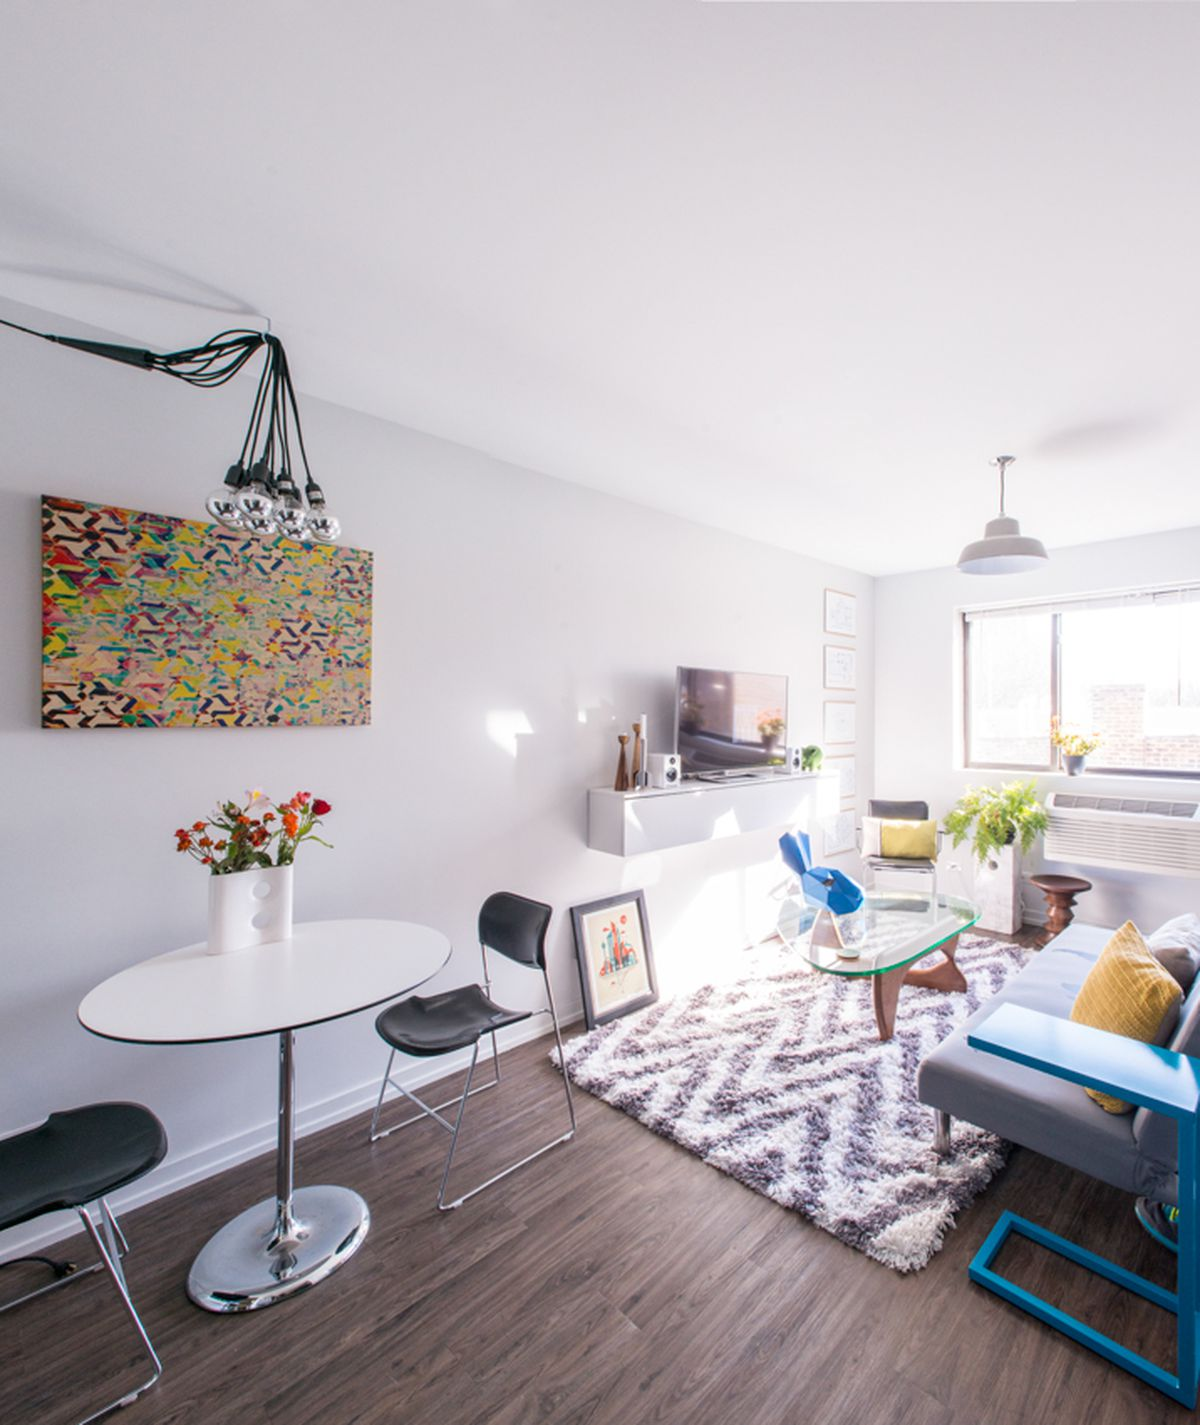 2 Bedroom Apartments In San Francisco For Rent: How To Live Large In A 500 Square Foot Studio Apartment